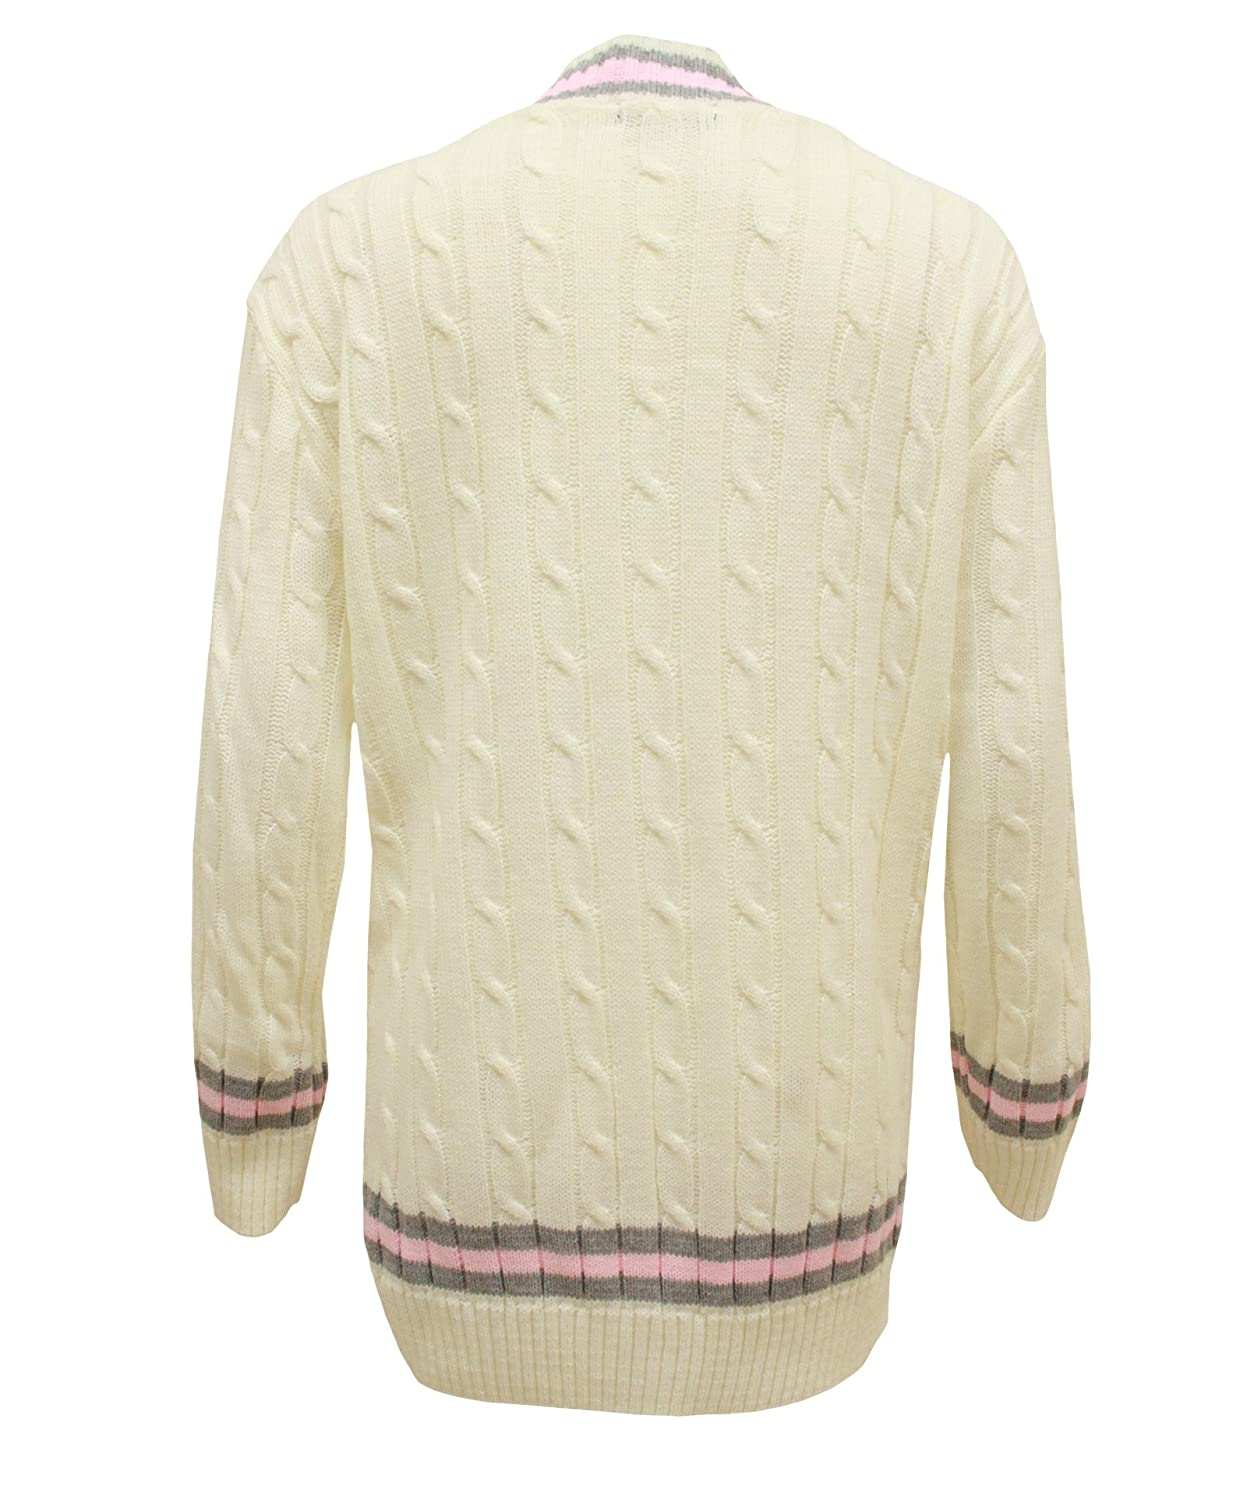 Sphere New Ladies V Neck Chunky Cable Knit Cricket Jumper Sweater One Size 8-14 Beige